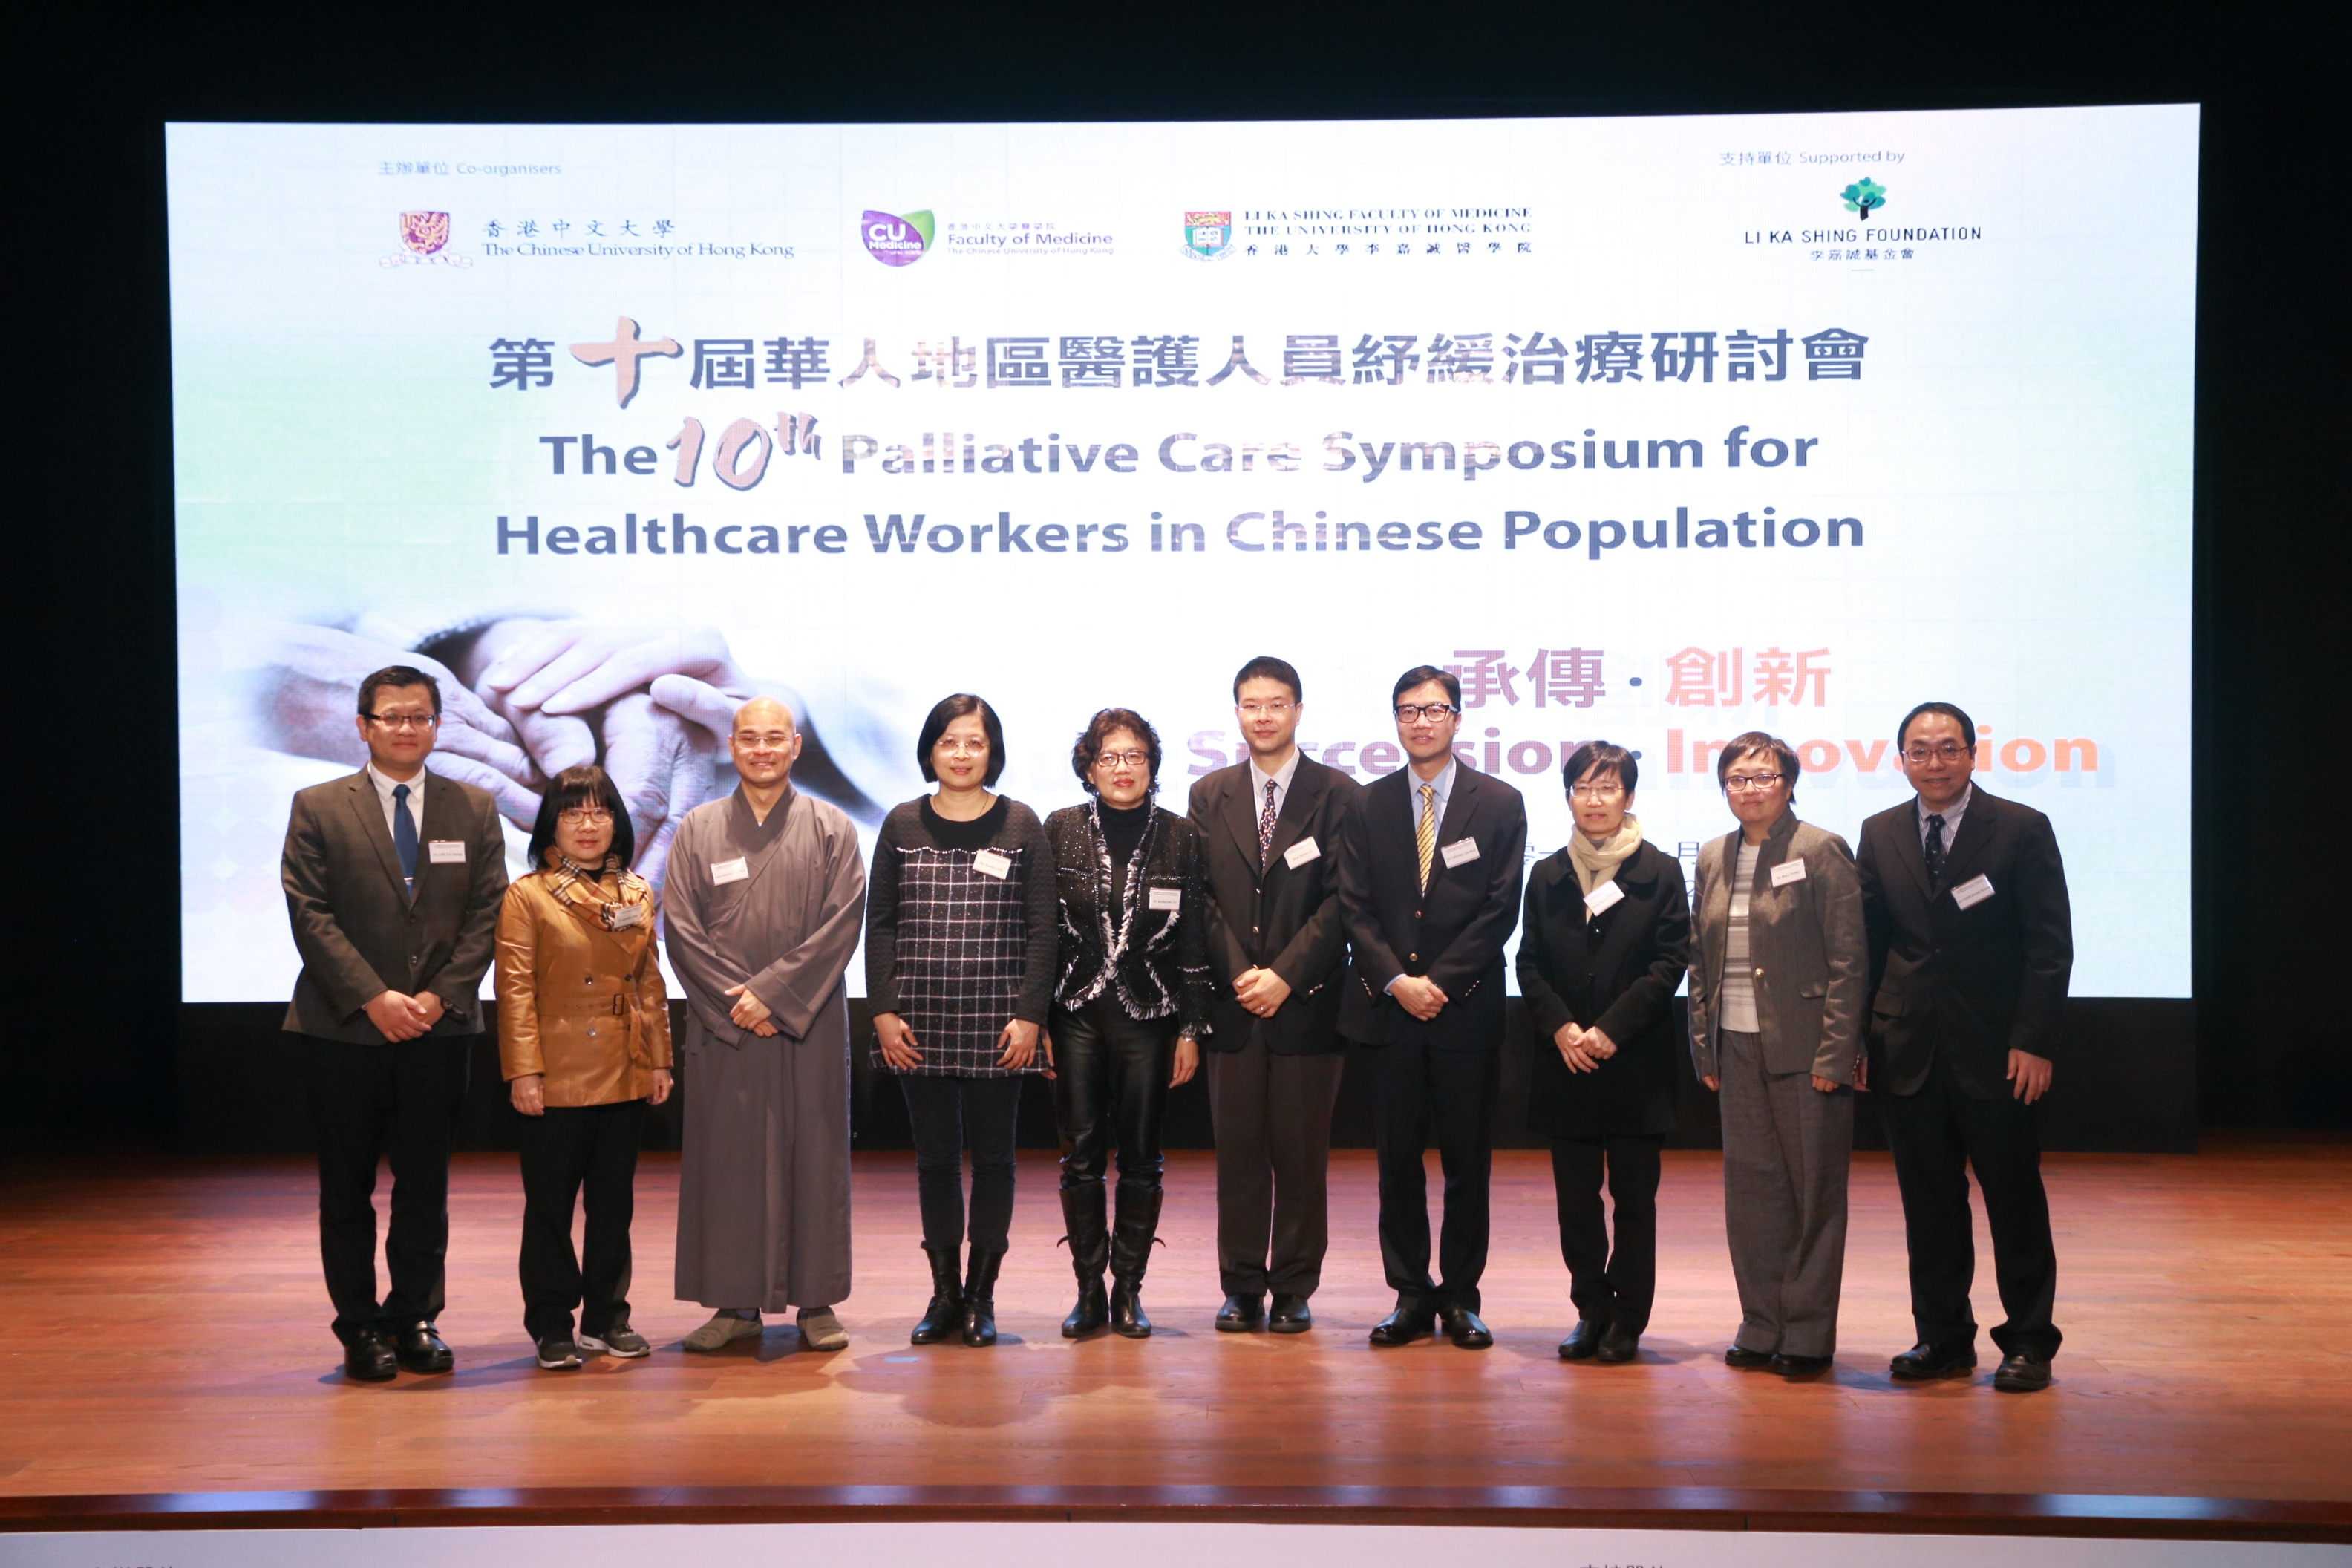 Over 180 local healthcare professionals attend the 10th Palliative Care Symposium for Healthcare Workers in Chinese Population, including Dr Katherine LO, Senior Project Manager of the Li Ka Shing Foundation (5th from left); Prof. Albert Martin LI, Assistant Dean (Education) of the Faculty of Medicine at CUHK (5th from right); Dr. Chi Wai CHEUNG, Assistant Dean (Private Sector Liaison) of the Li Ka Shing Faculty of Medicine at HKU (4th from right); the Venerable Shi Tian Wen, Master Lecturer of Tsz Shan Monastery (3rd from left); Dr. Tai Chung LAM, Clinical Assistant Professor of the Department of Clinical Oncology of the Li Ka Shing Faculty of Medicine at HKU (1st from left); Dr. Rebecca YEUNG, Chief of Service of the Department of Clinical Oncology of the Pamela Youde Nethersole Eastern Hospital (3rd from right); and Dr. Jennifer YIM, Centre-in-charge of Tsz Shan Monastery Spiritual Counselling Centre (2nd from left).